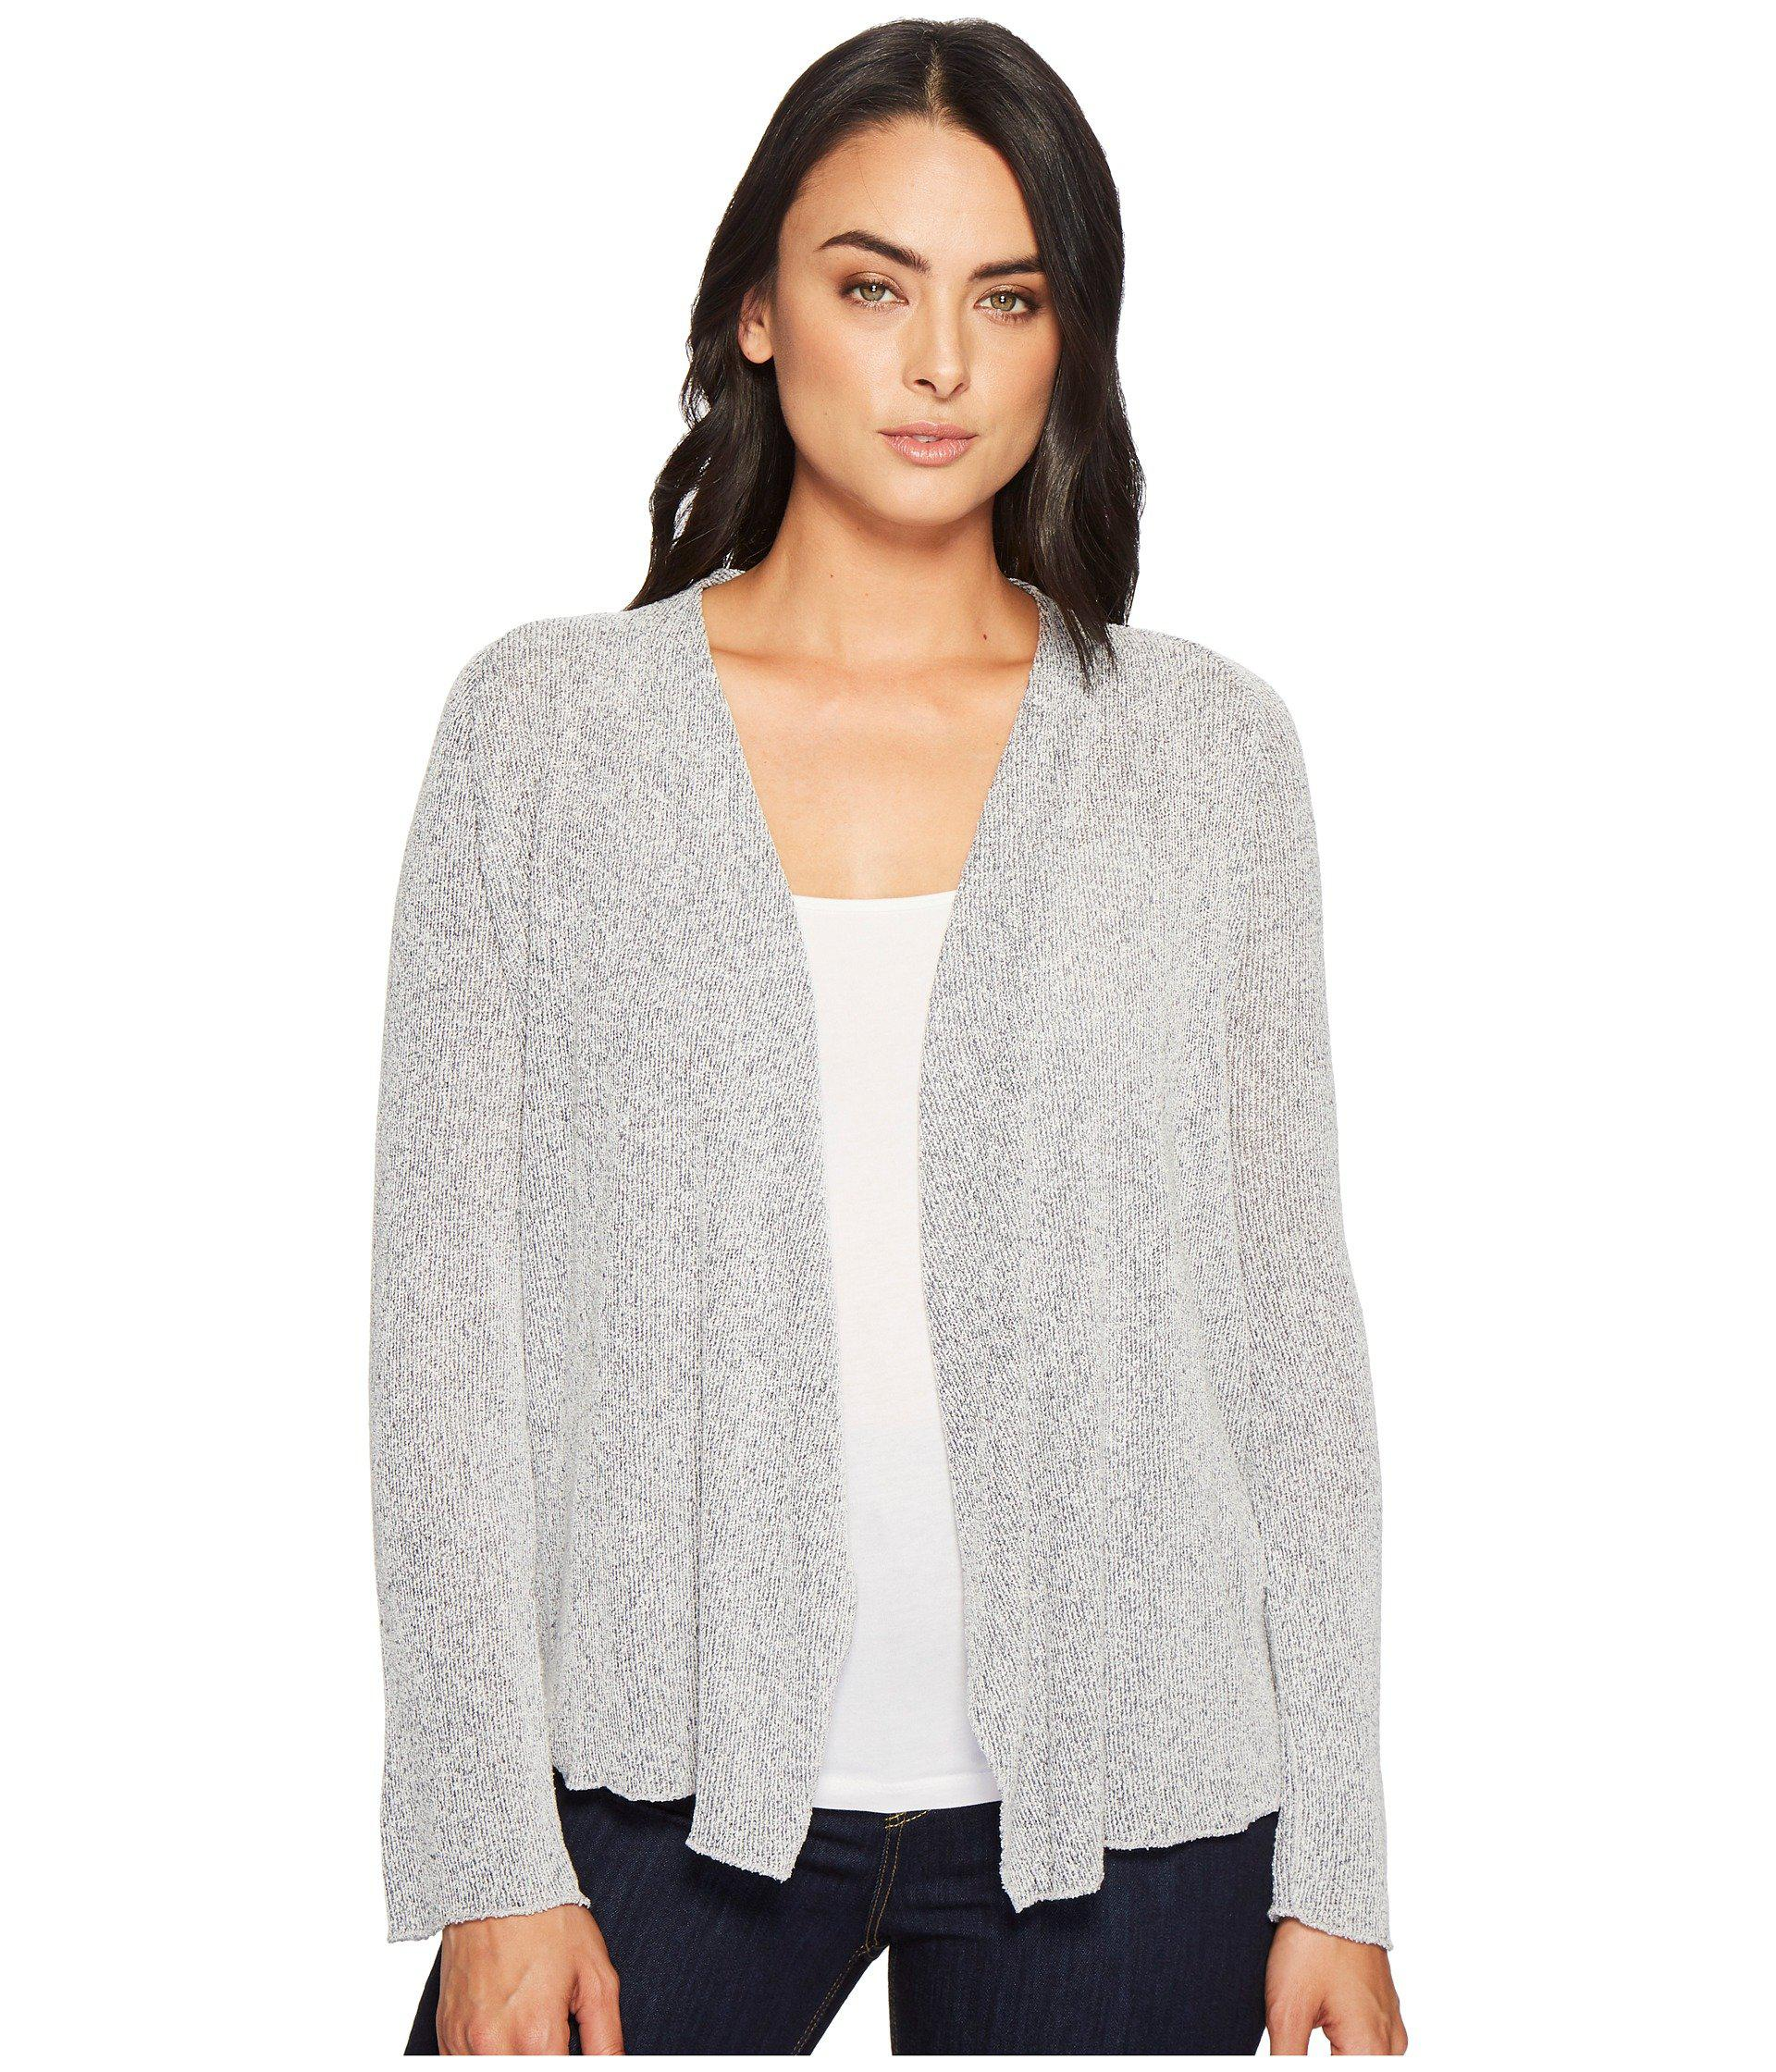 57804fd970f Lyst - Three Dots Boucle Sweater Knit Cardigan in Gray - Save 50%